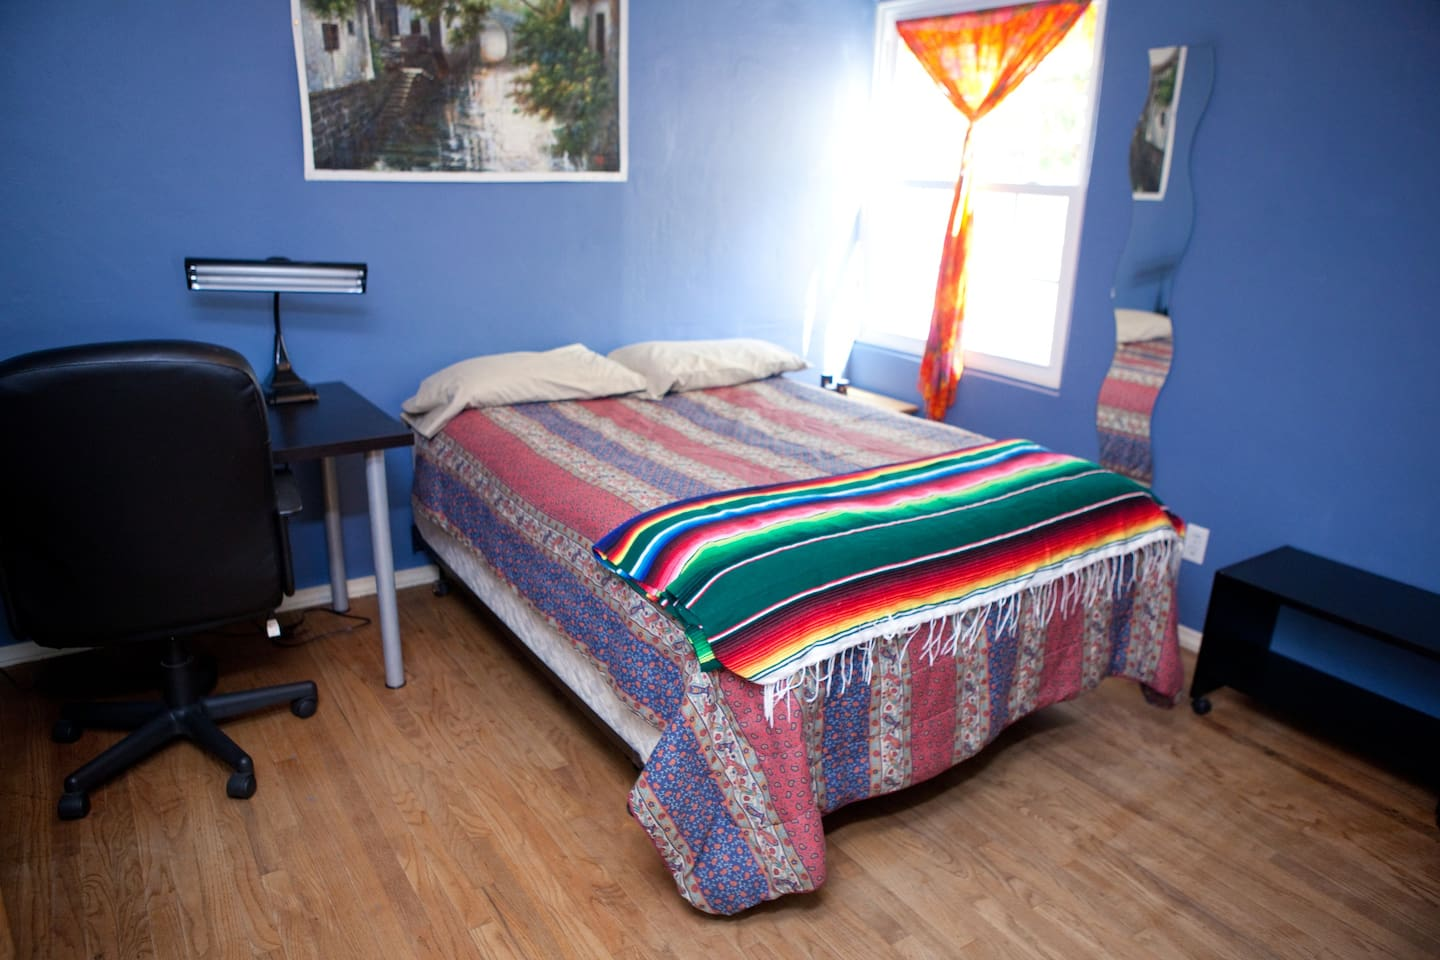 We have since repainted the room to a nice yellow with a Queen Bed